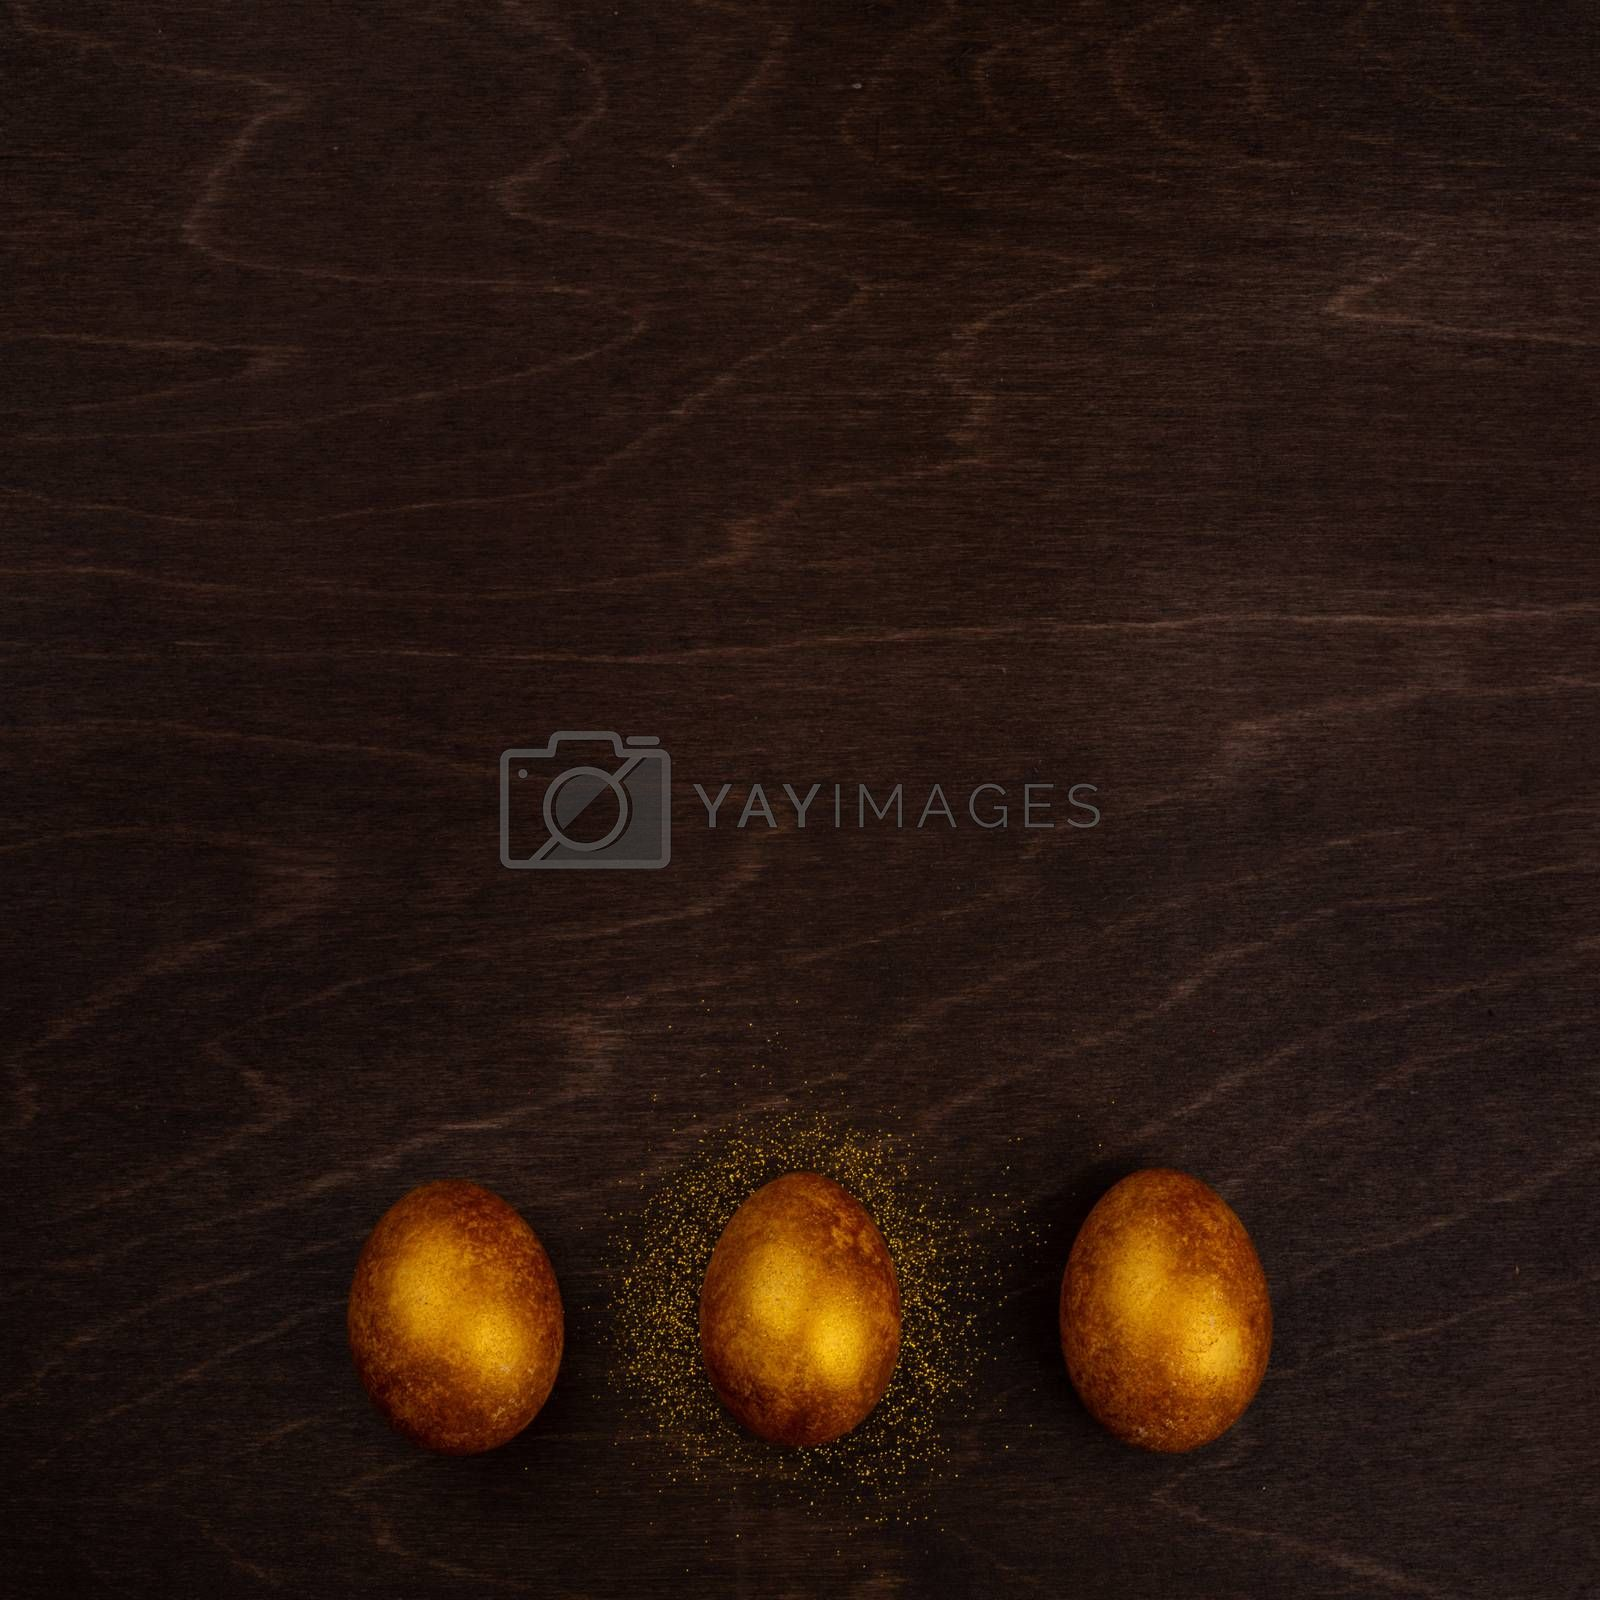 Three big golden easter eggs on dark wooden background copy space for text